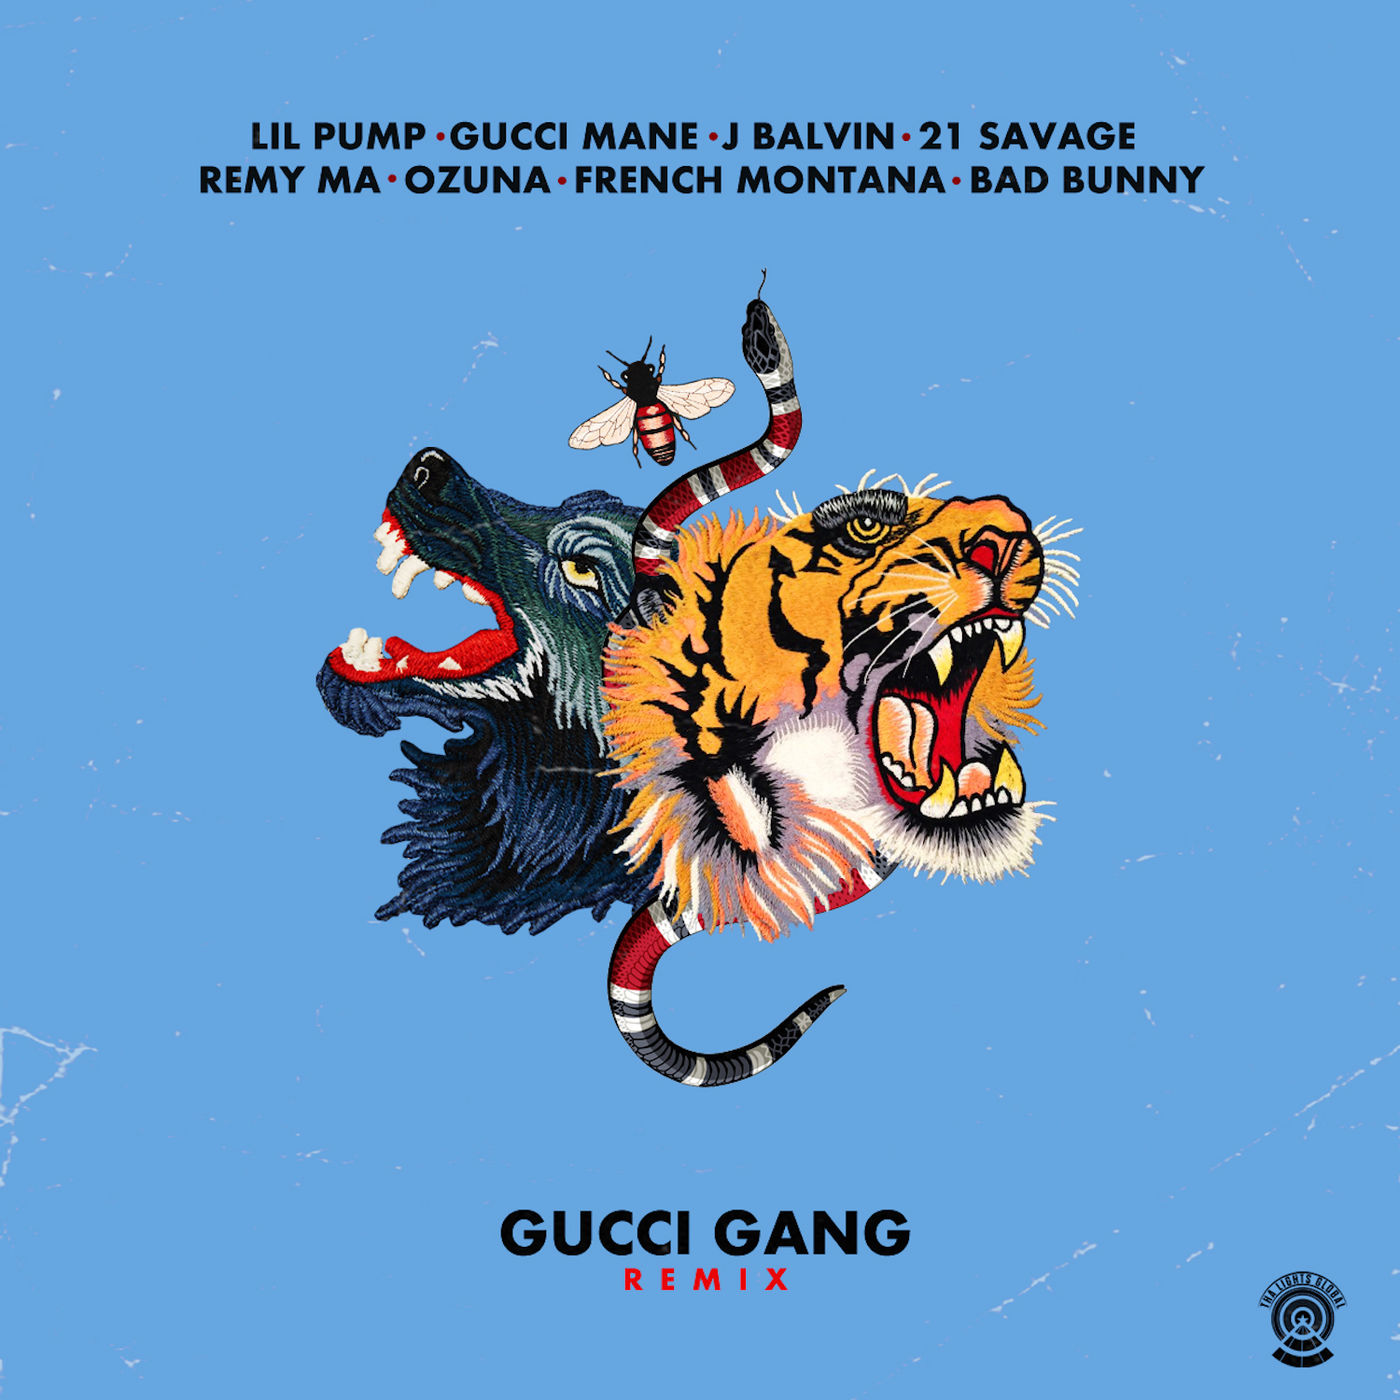 Download Download Download · View on iTunes. Lil Pump - Gucci Gang ...